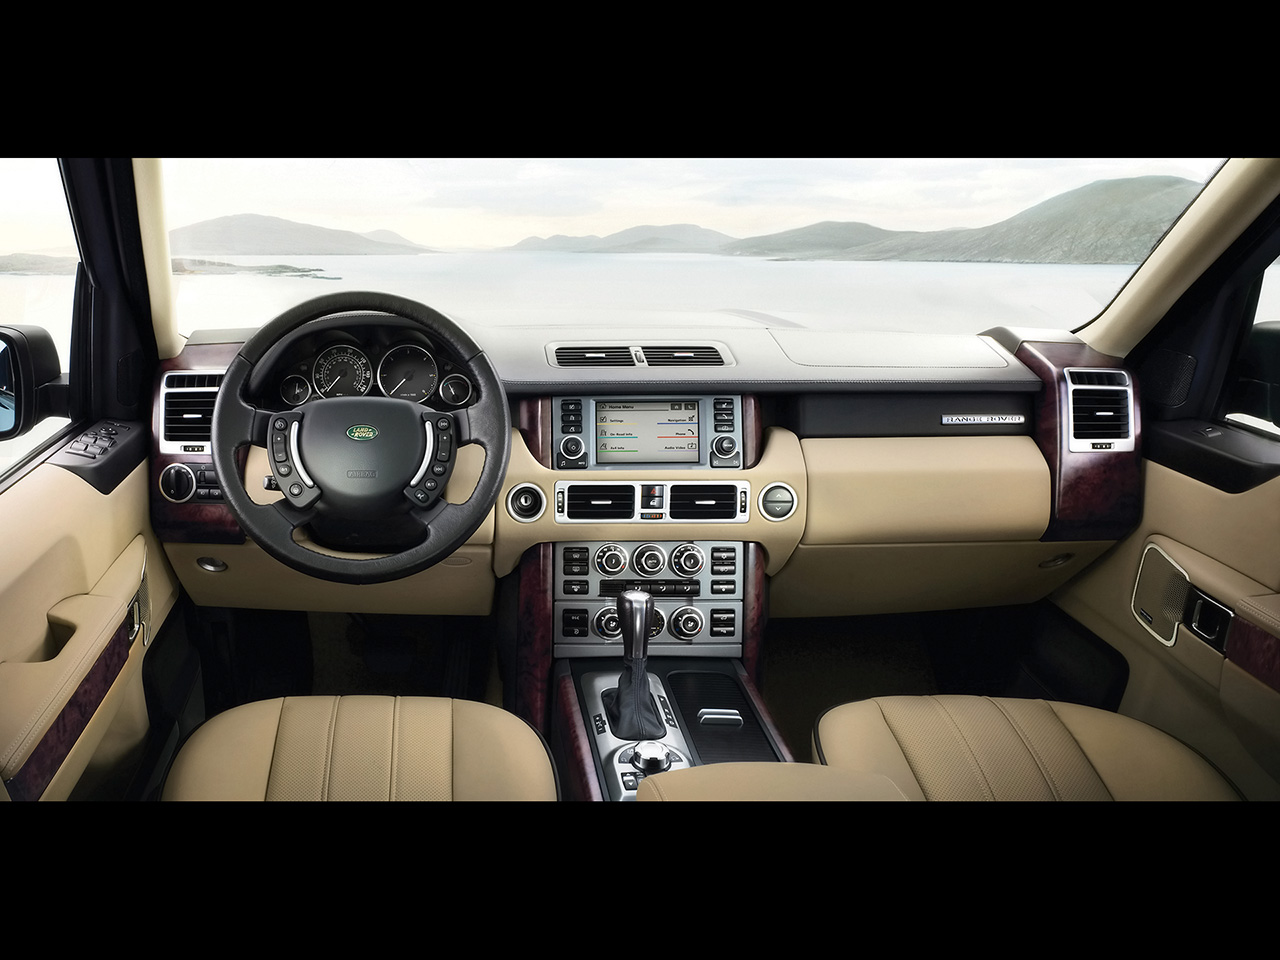 2007 Land Rover Range Rover Image 10